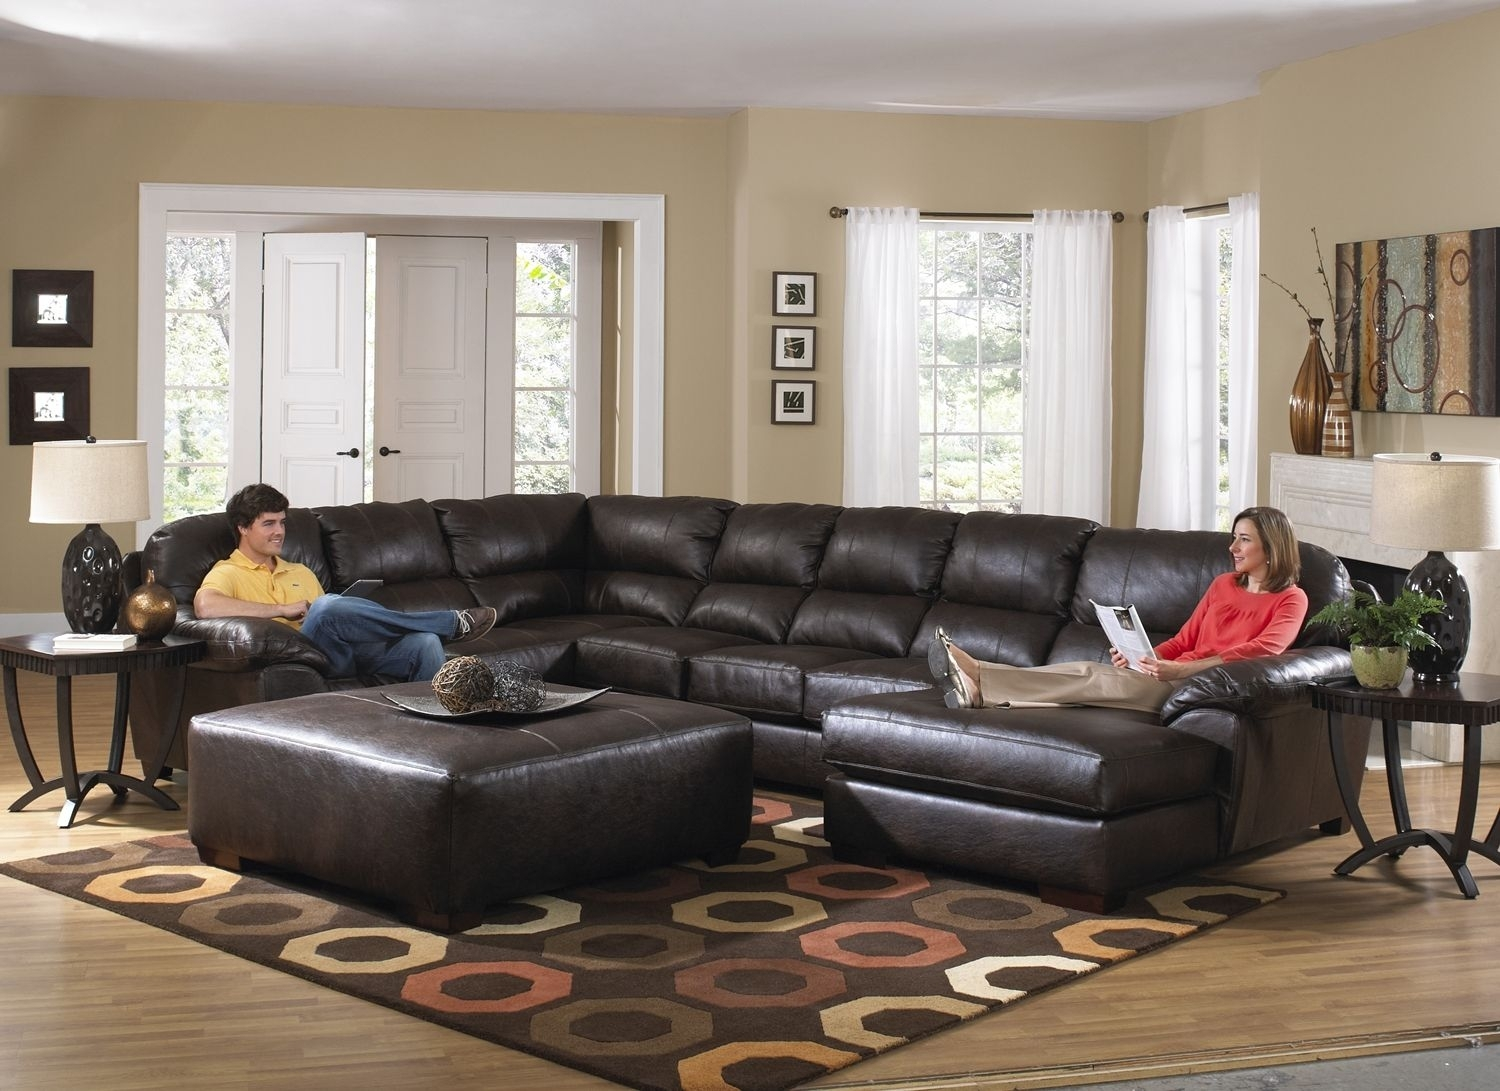 Lawson Godiva U Shape Sectional Sofa W/ Chaise In Chocolate Bonded within Reclining U Shaped Sectionals (Image 9 of 15)